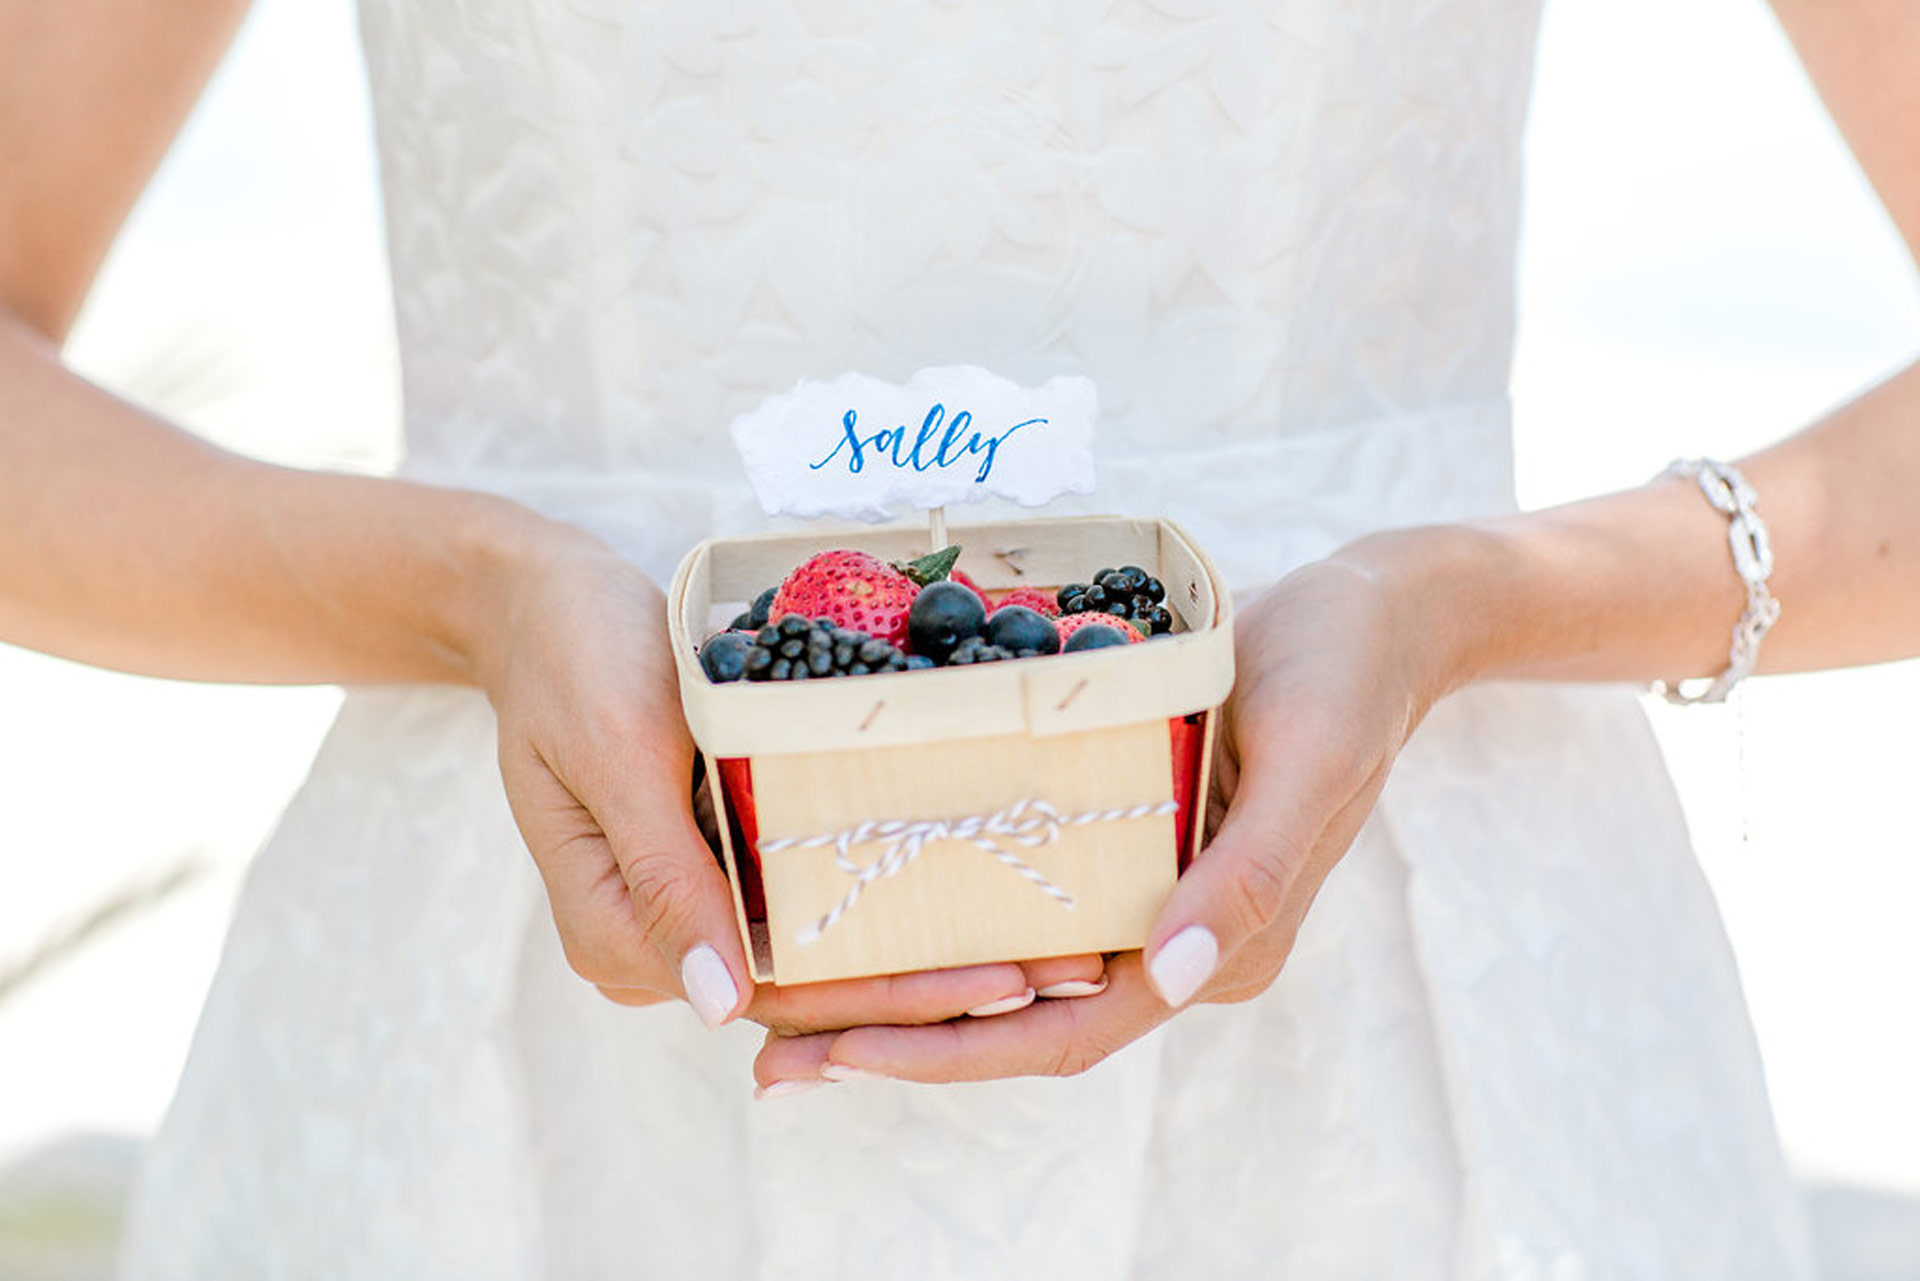 Bridal Name Plate with Berry Guest Takeaway